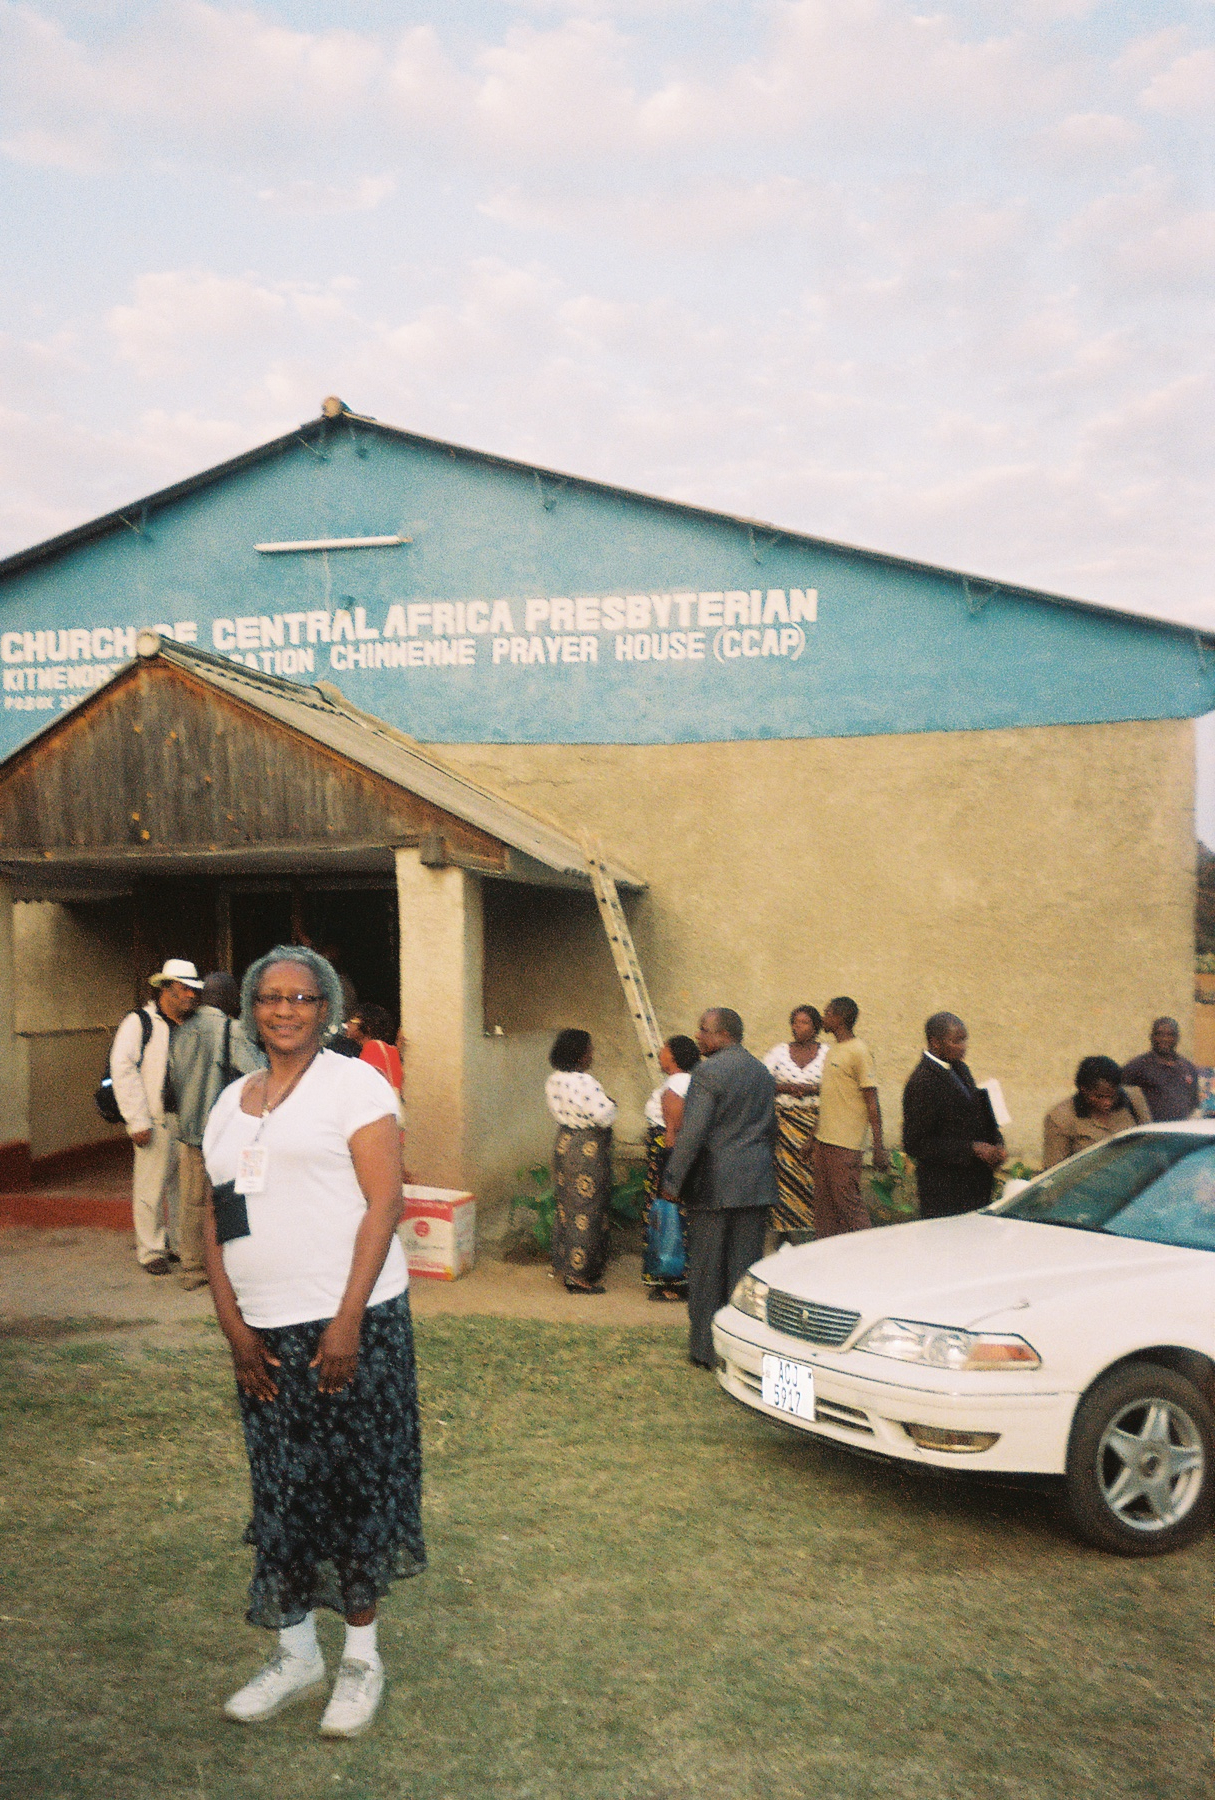 Standing outside the Central Church of Africa Presbyterian (CCAP), Kitwe North Chimwemwe Prayer House (2010).